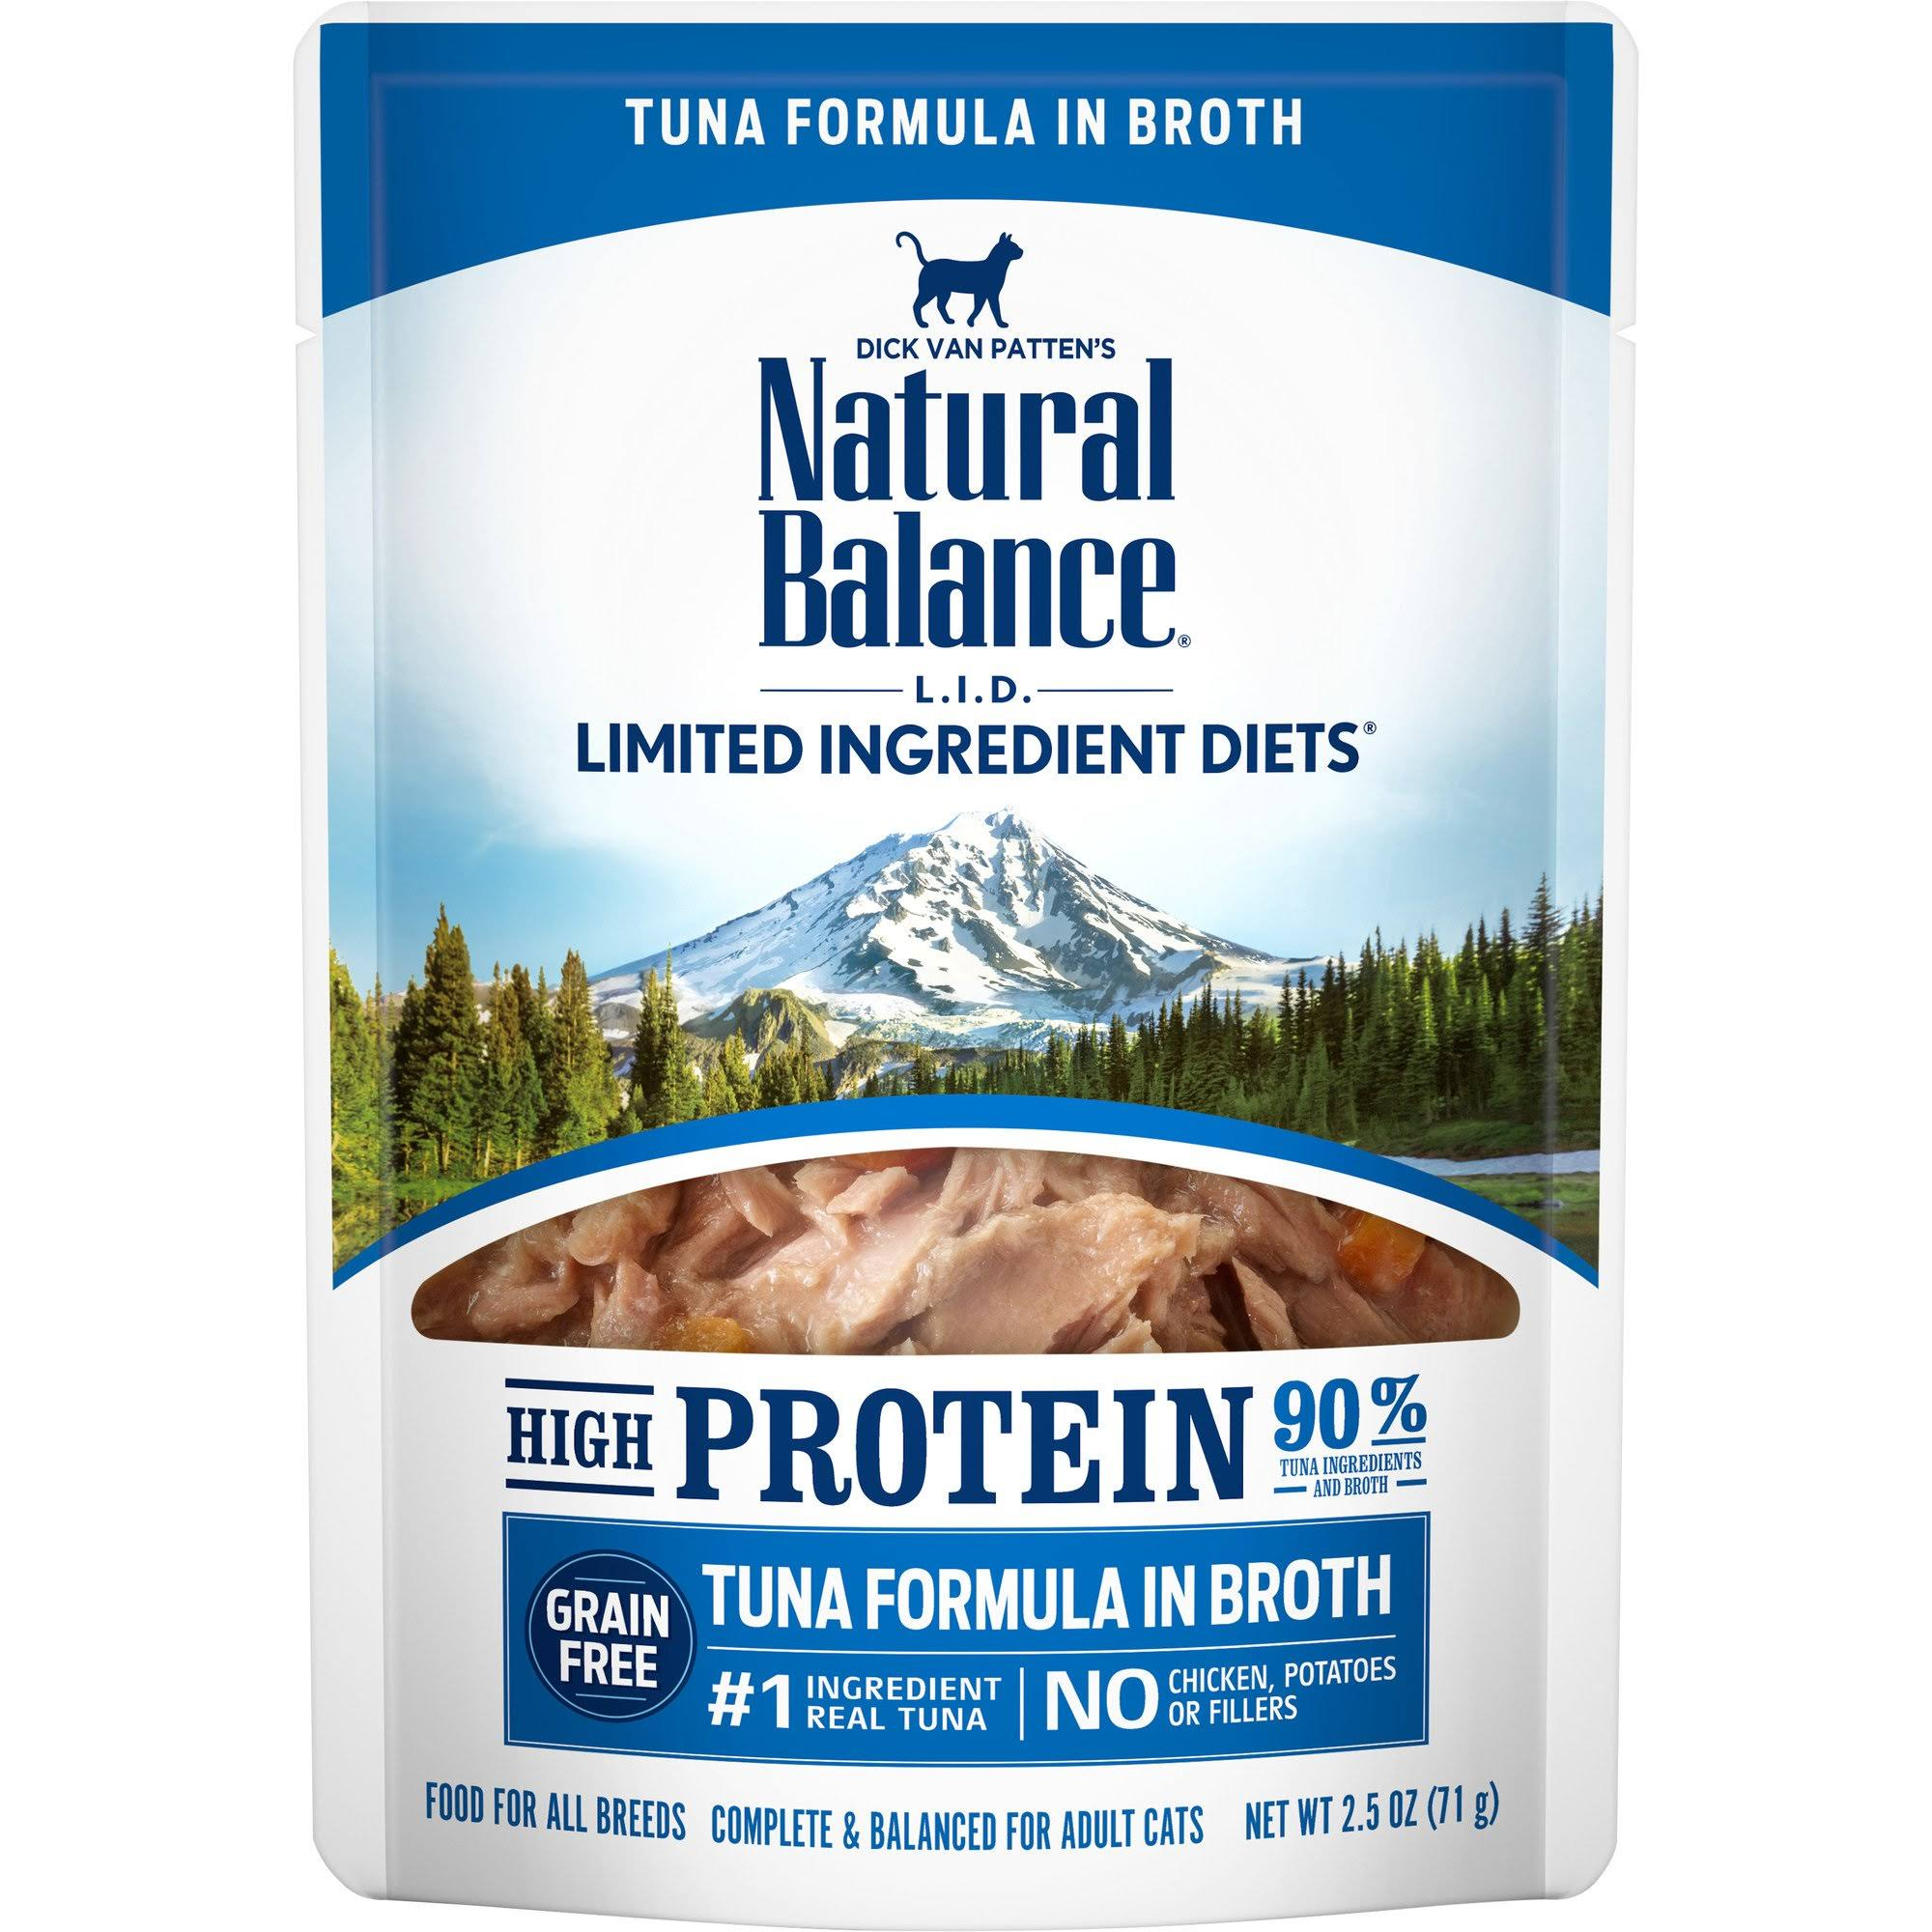 Natural Balance Limited Ingredient Diets Wet Cat Food